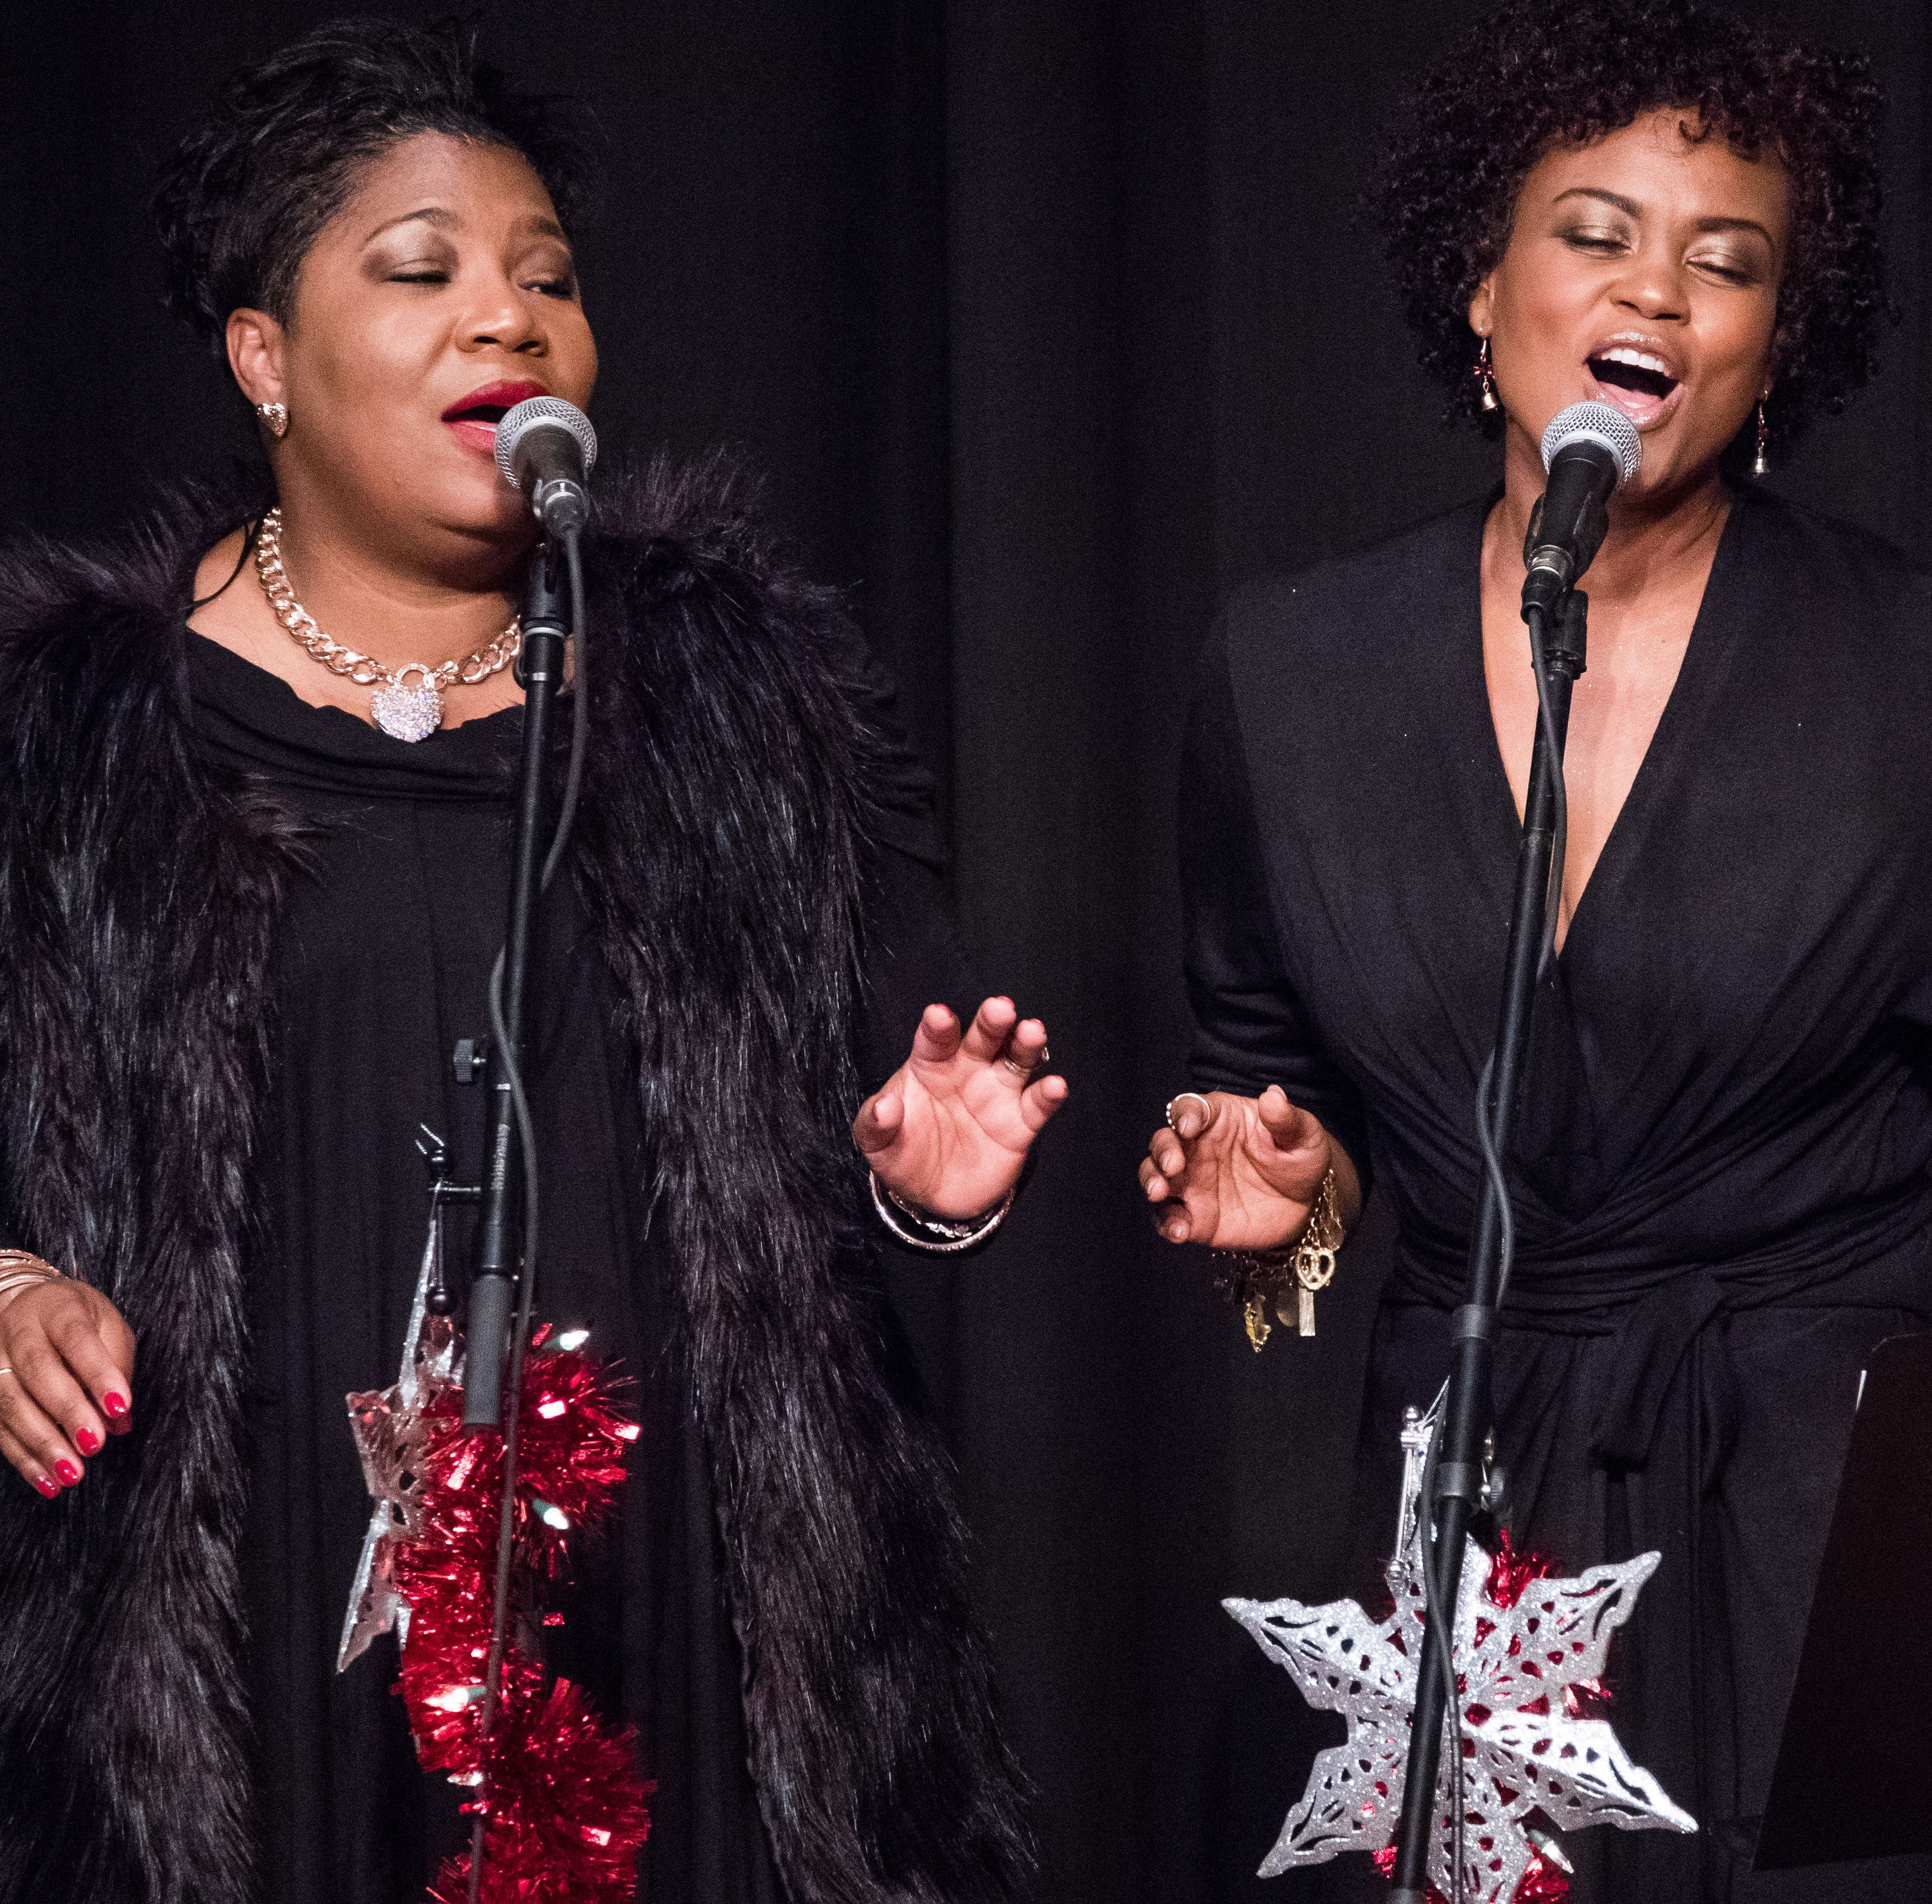 Local singers admire Aretha Franklin's gospel roots